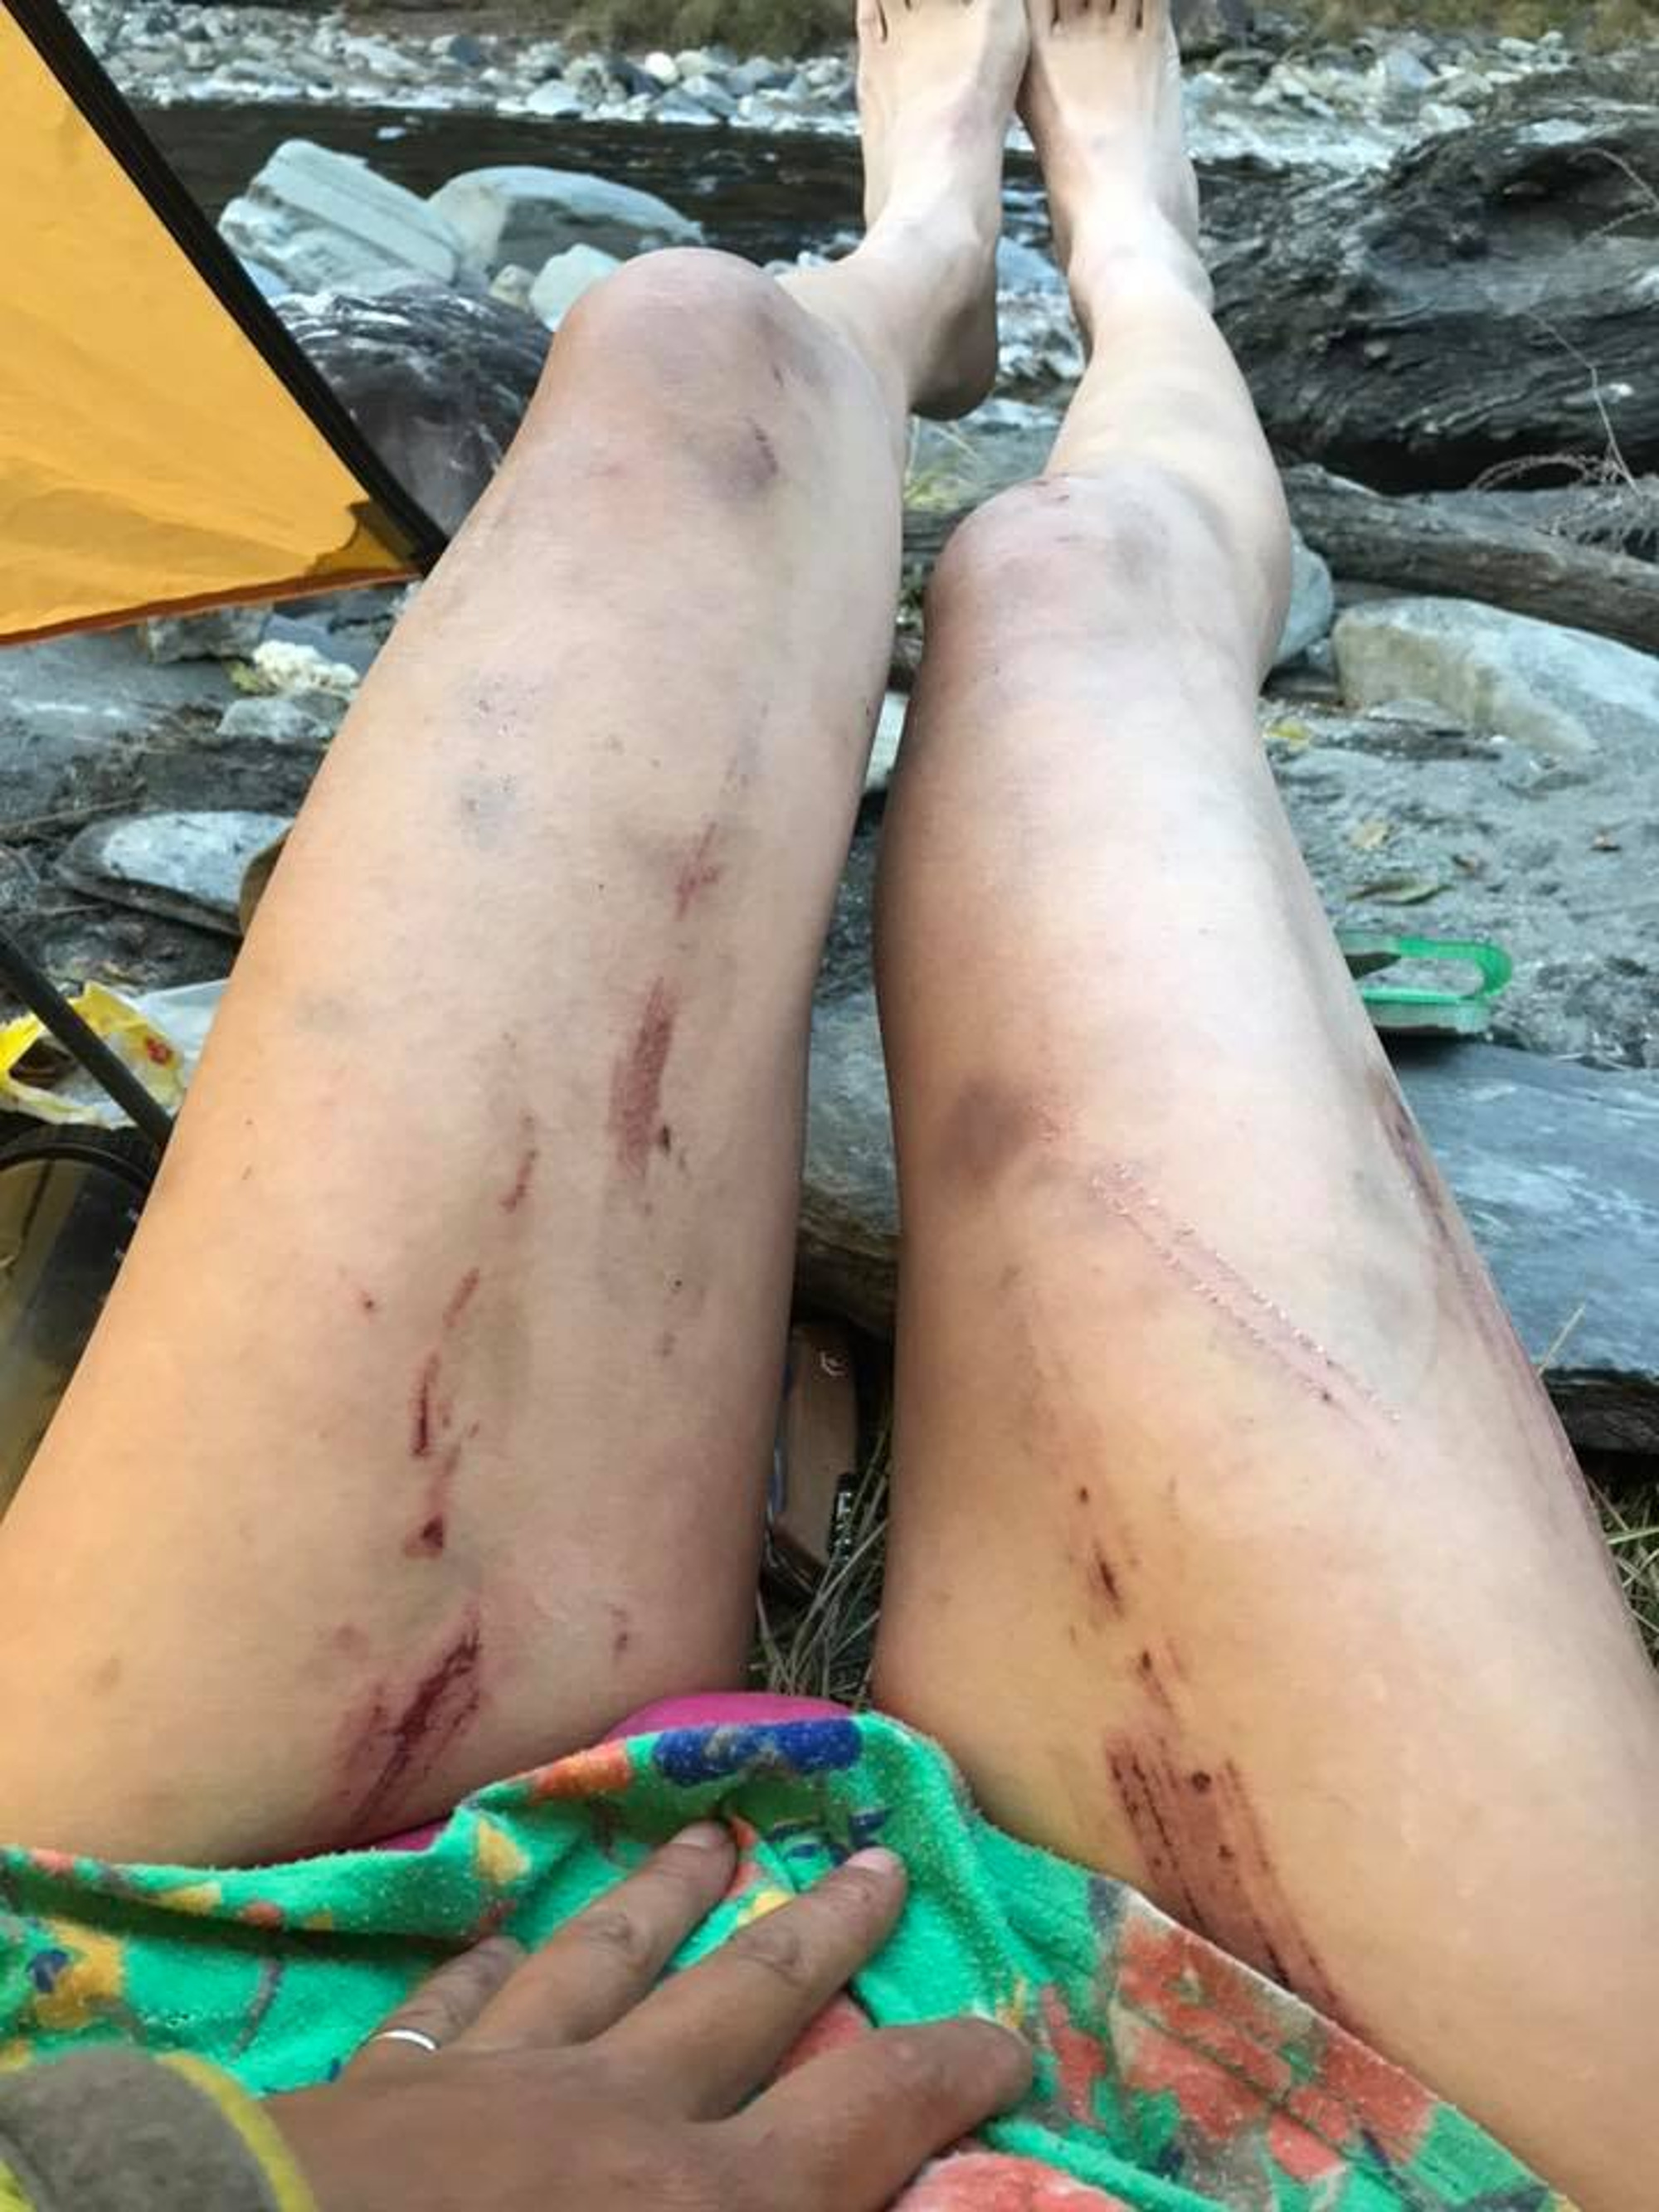 Gigi Wu's injured legs